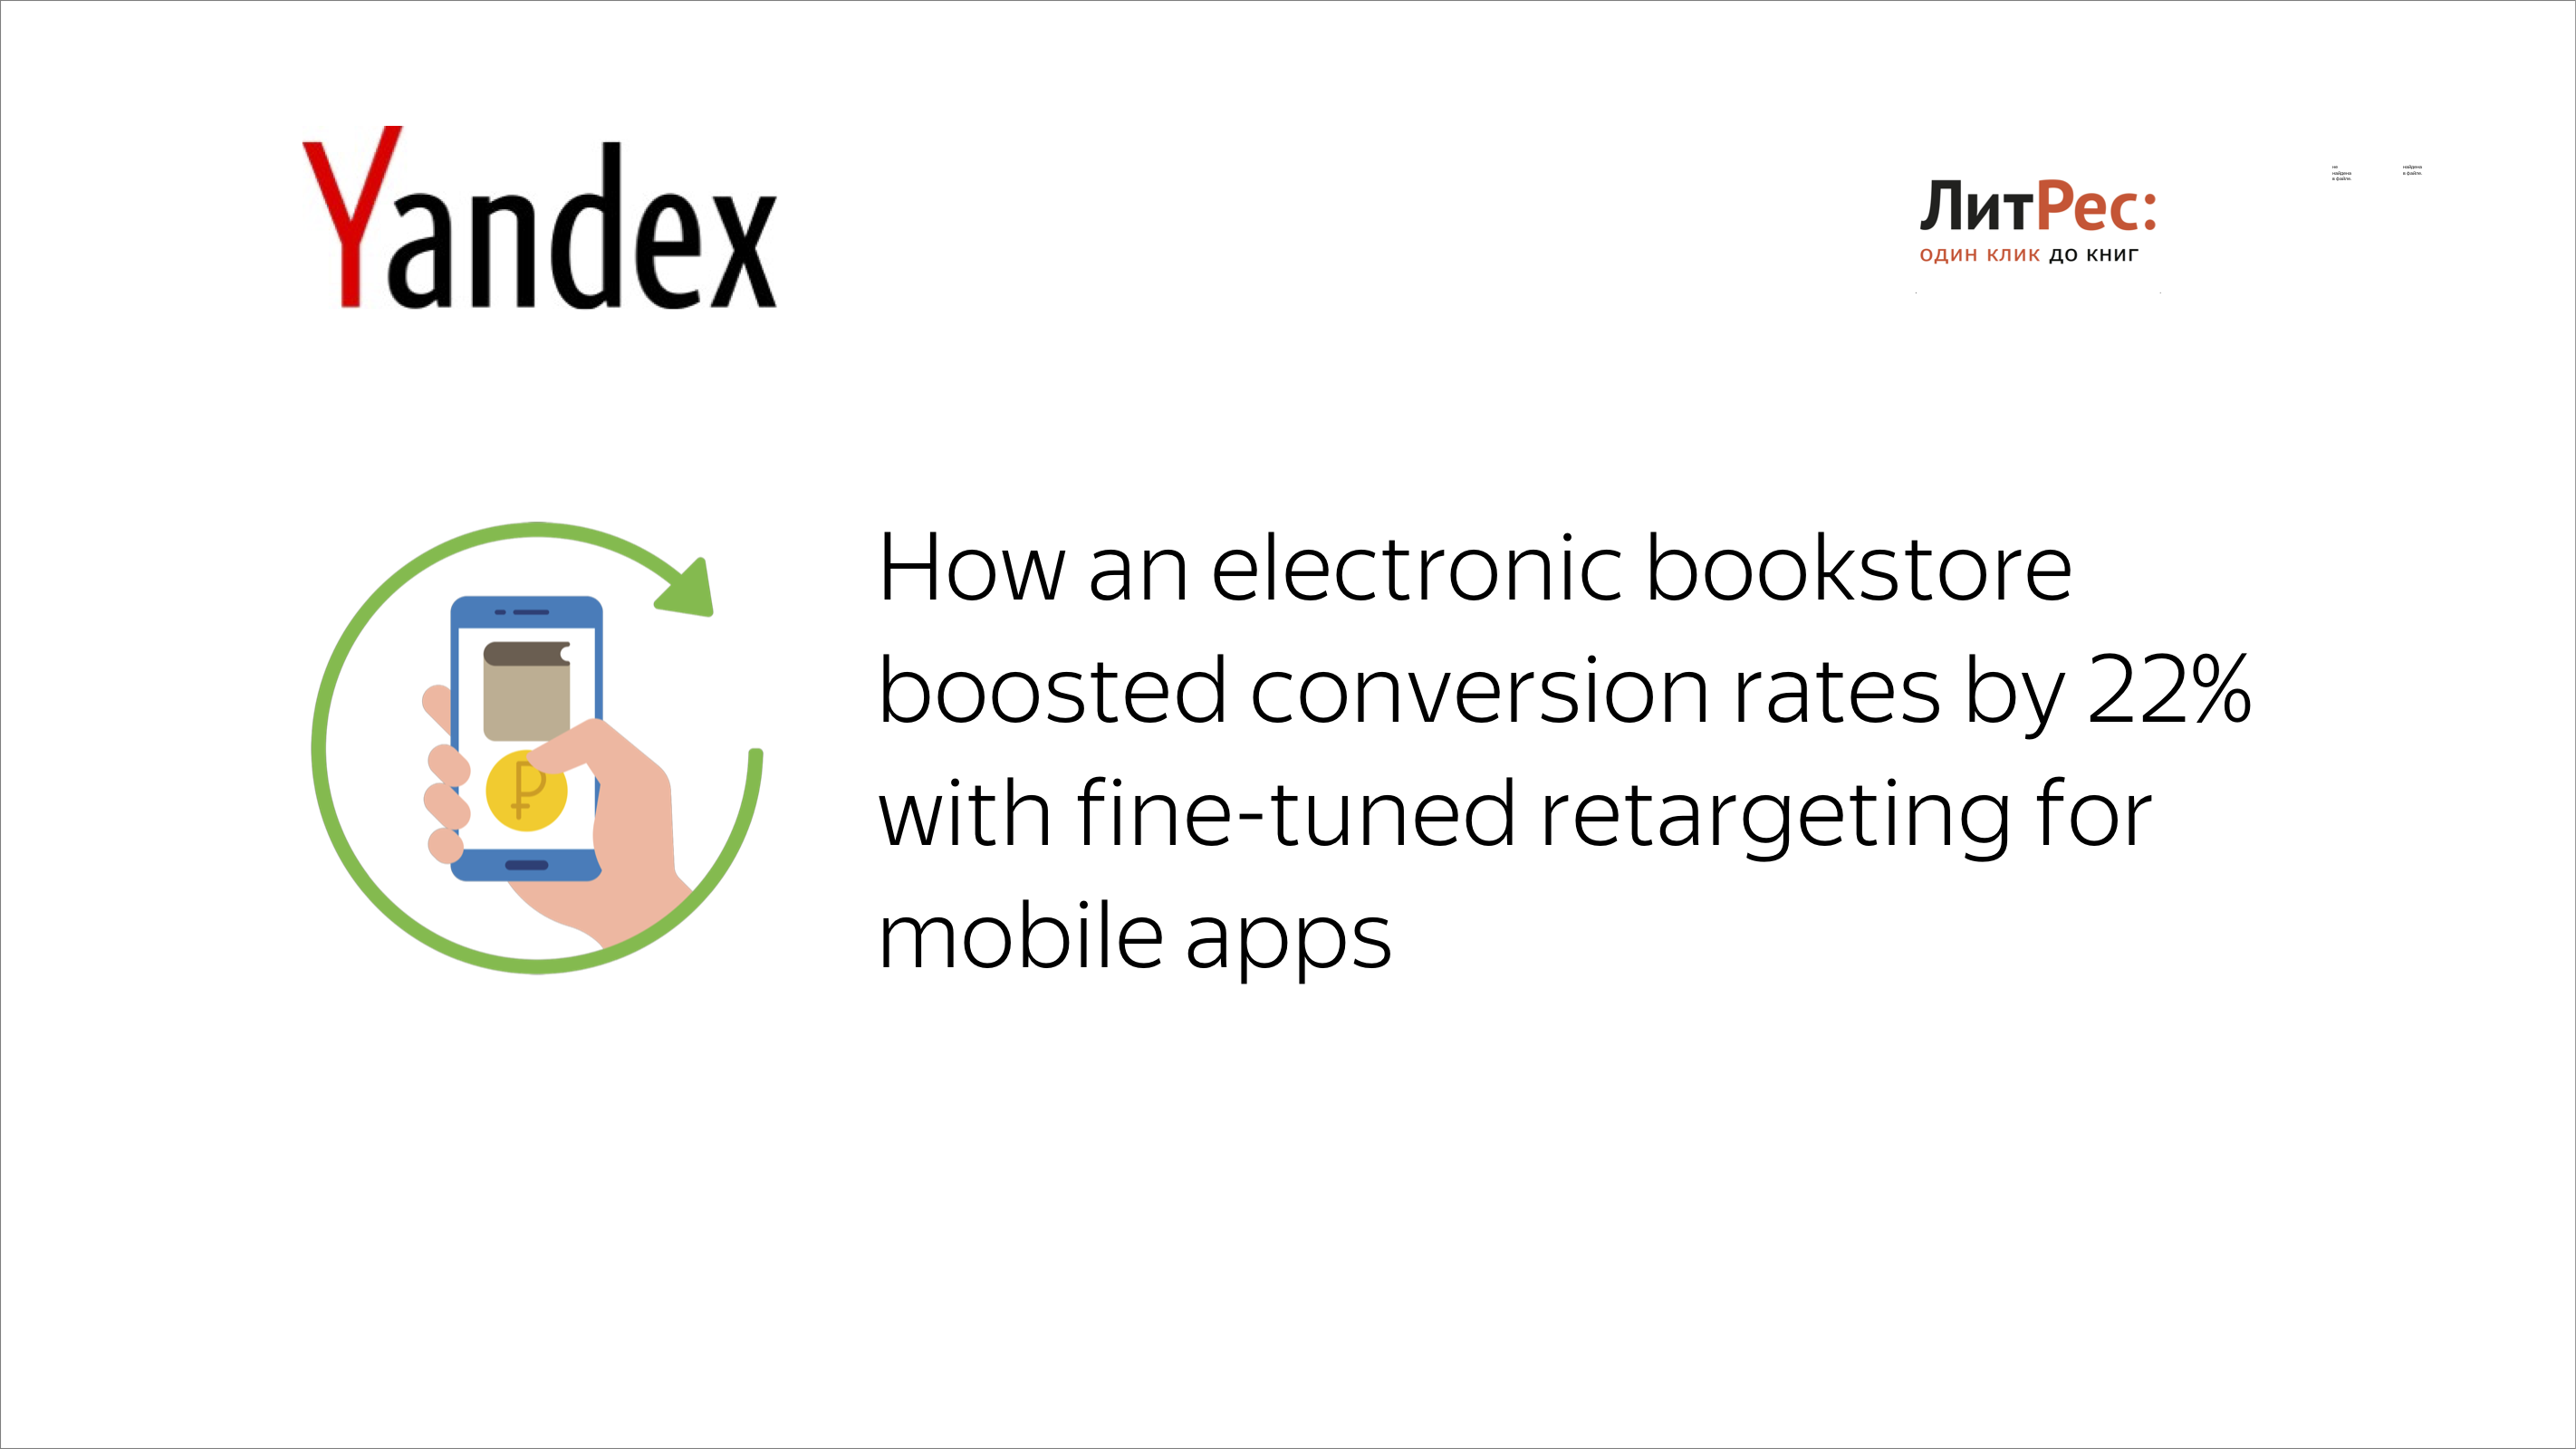 How anelectronic bookstore boosted conversion rates by22% with fine-tuned retargeting for mobile apps